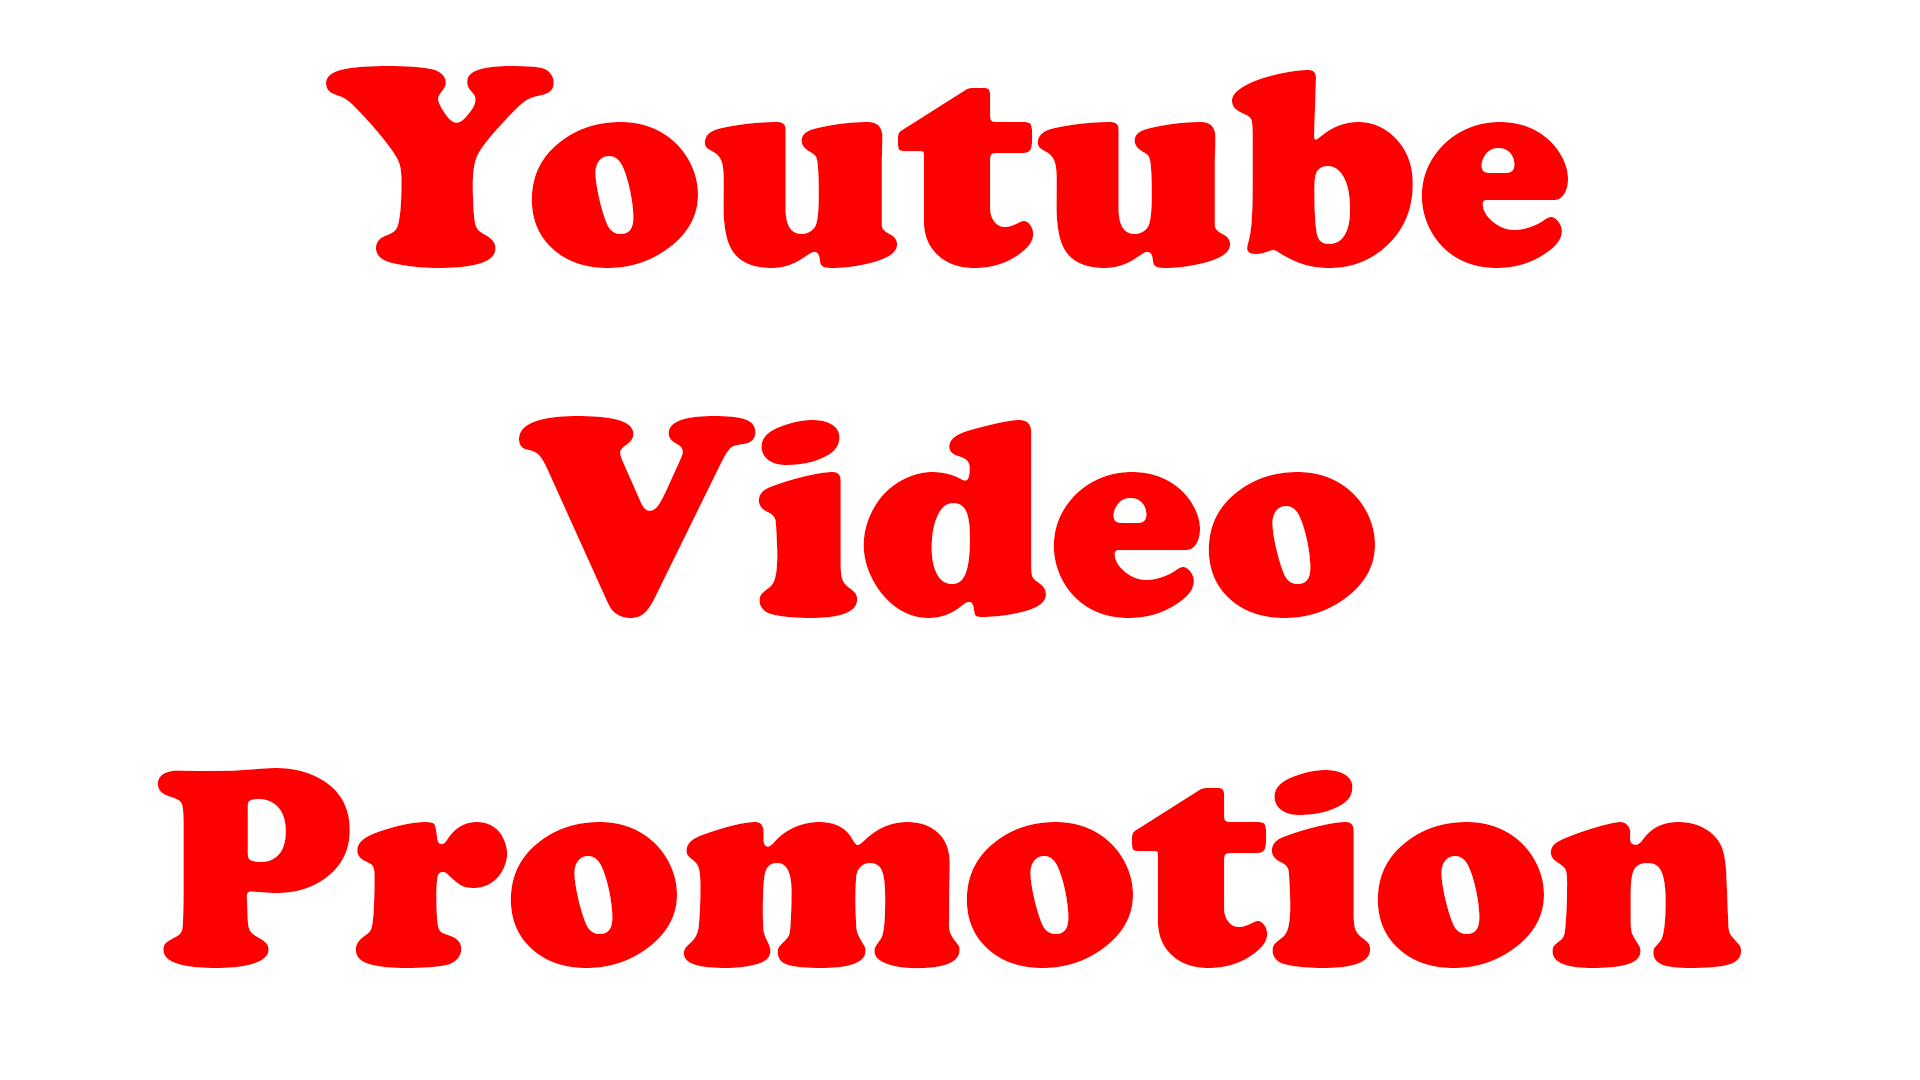 Youtube Video Ranked Promotion